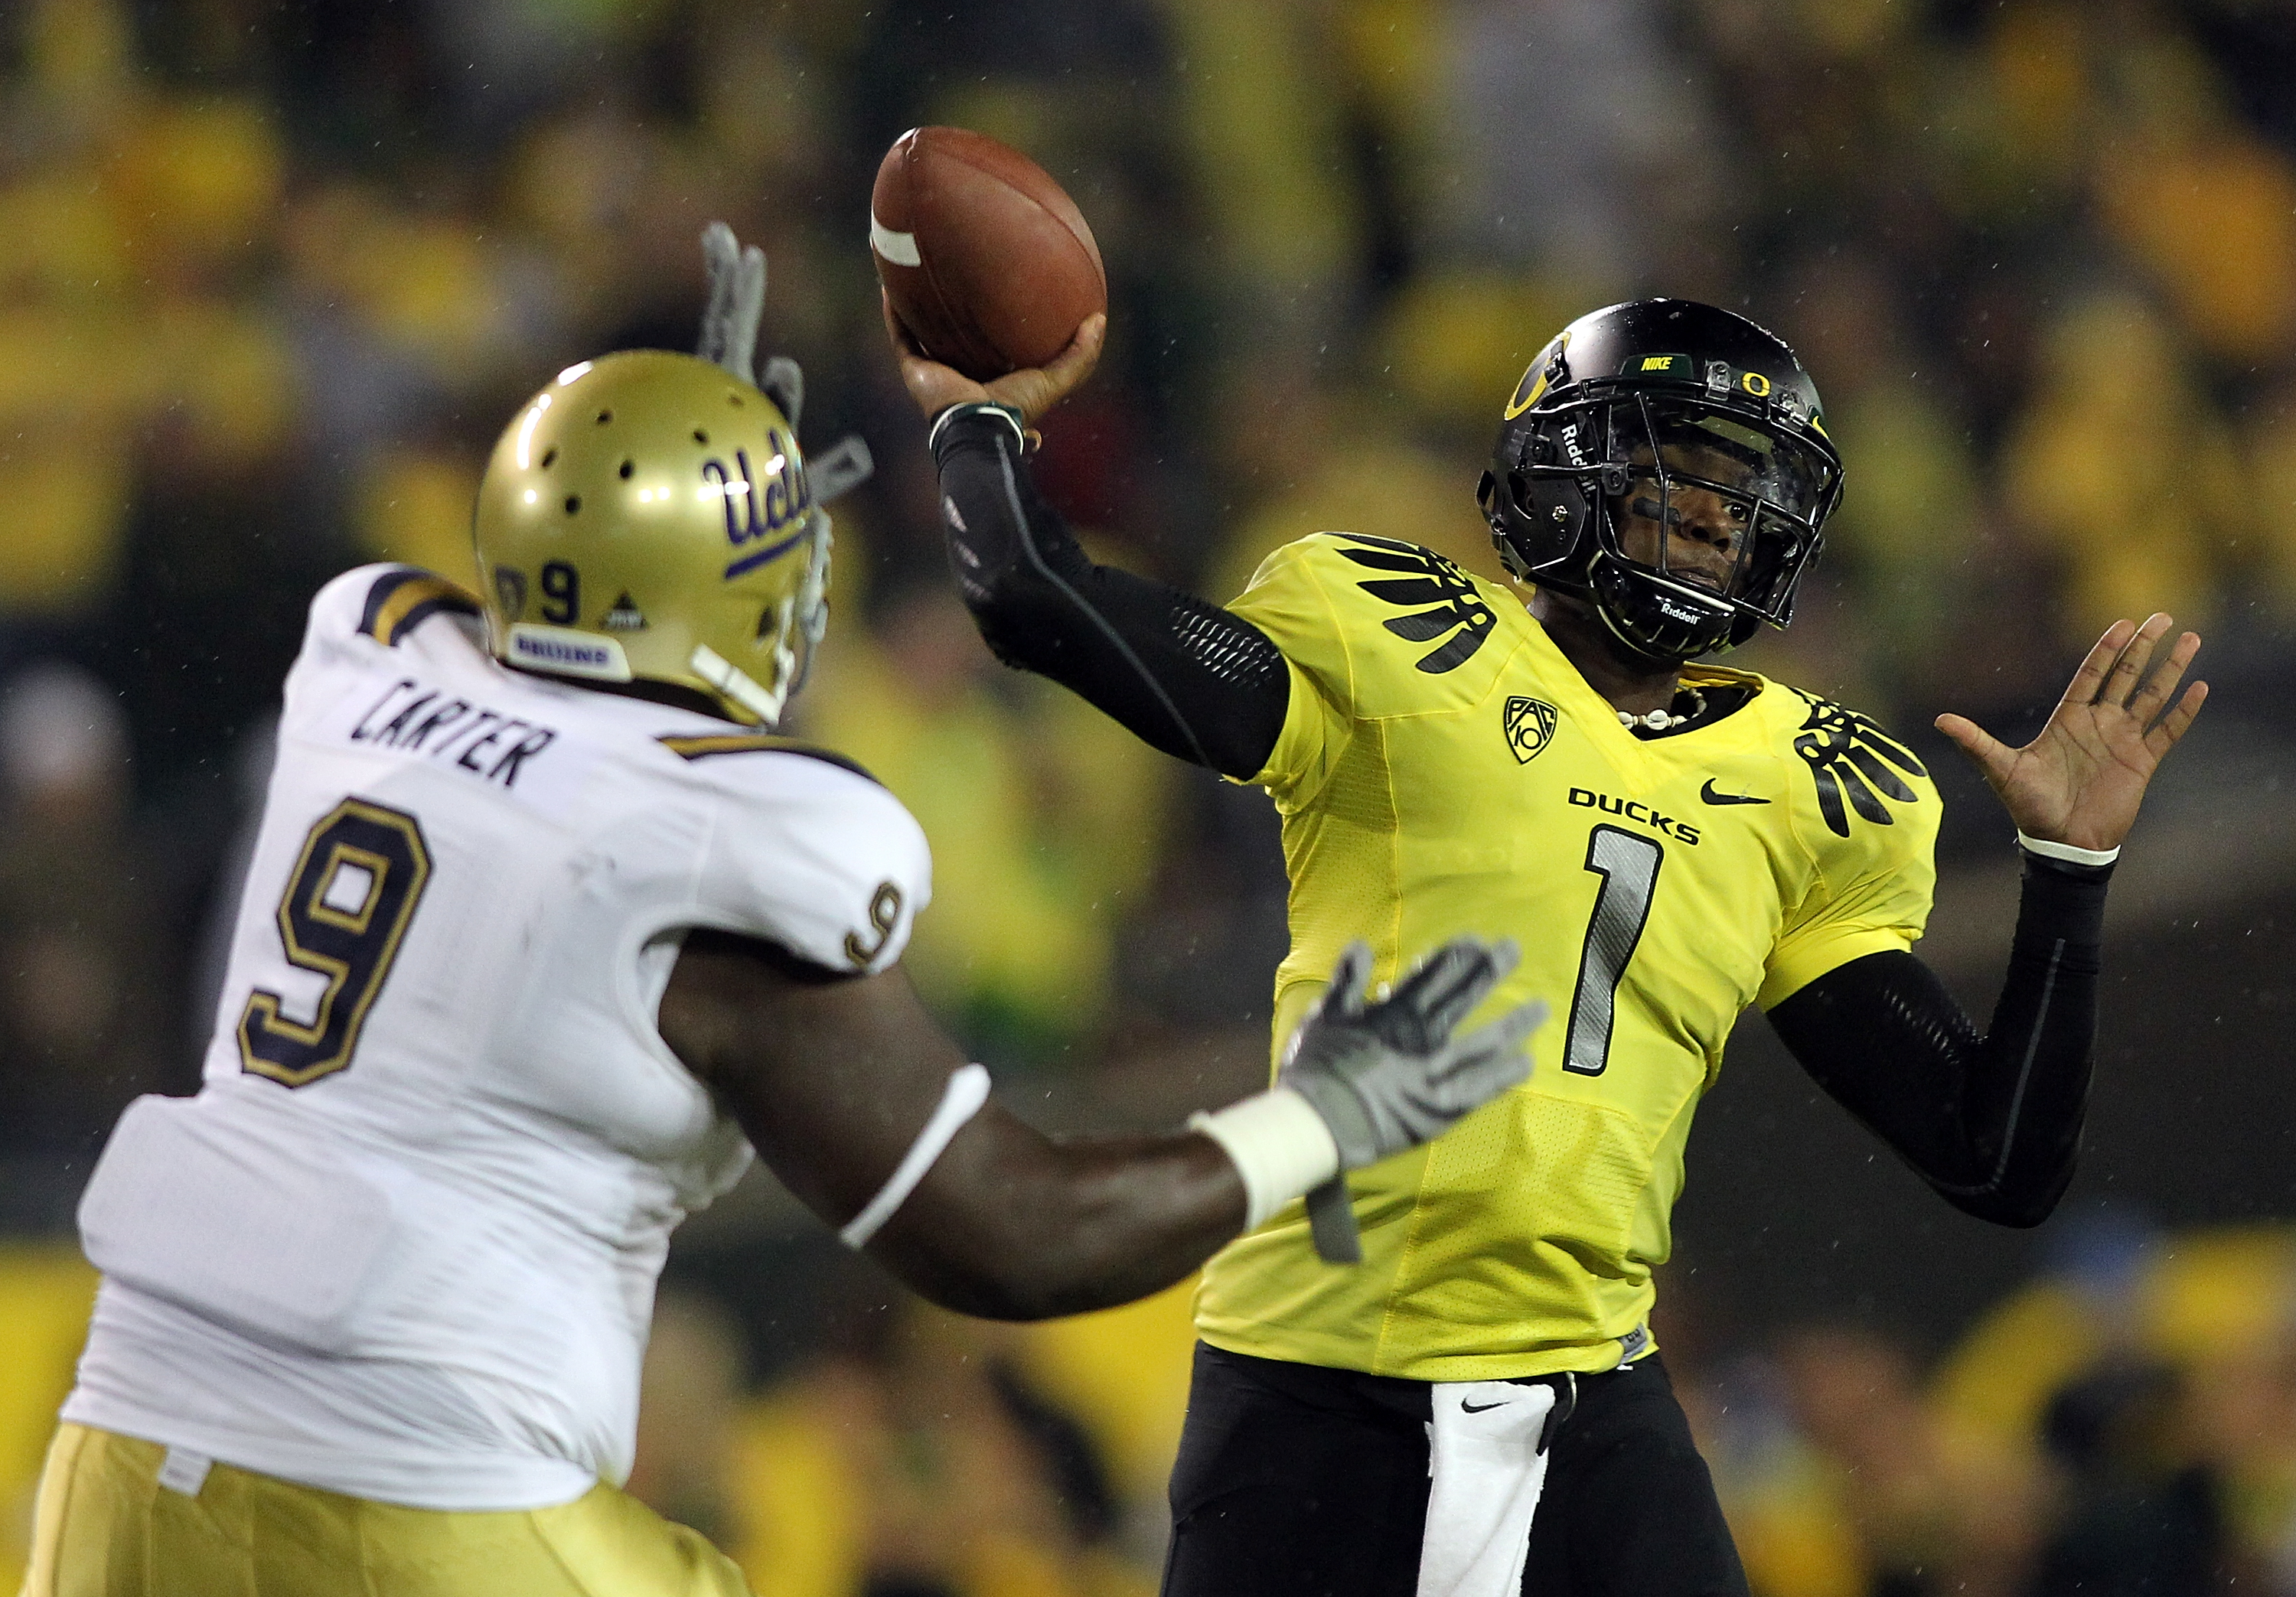 EUGENE, OR - OCTOBER 21:  Darron Thomas #1 of the Oregon Ducks throws a pass against Donavan Carter #9 of the UCLA Bruins  on October 21, 2010 at the Autzen Stadium in Eugene, Oregon.  (Photo by Jonathan Ferrey/Getty Images)